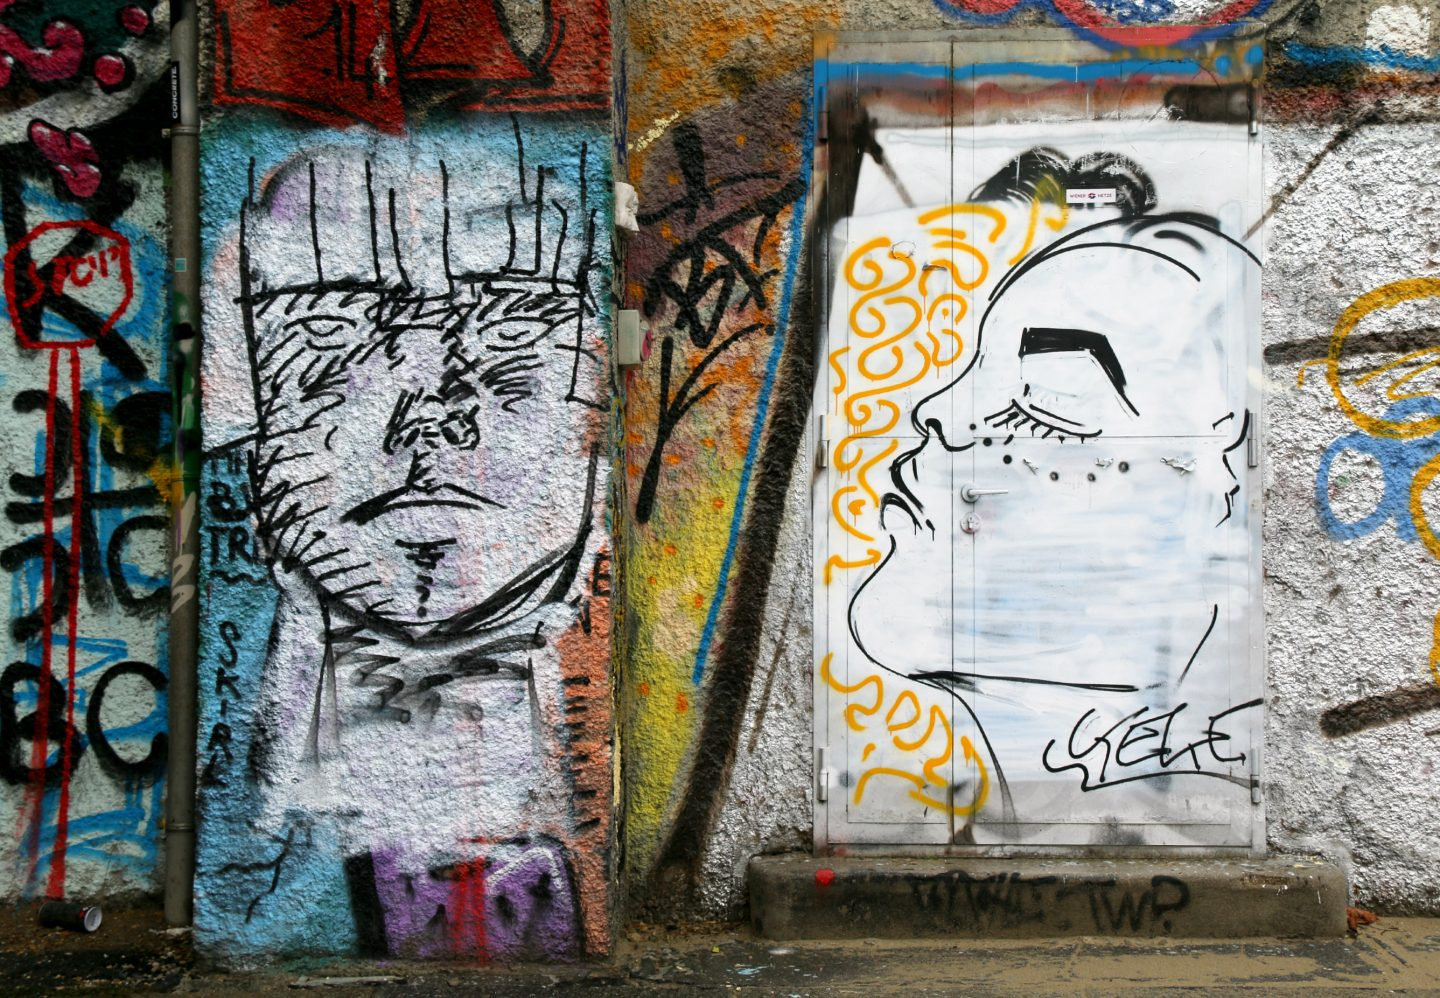 Vienna street art by the canal 17